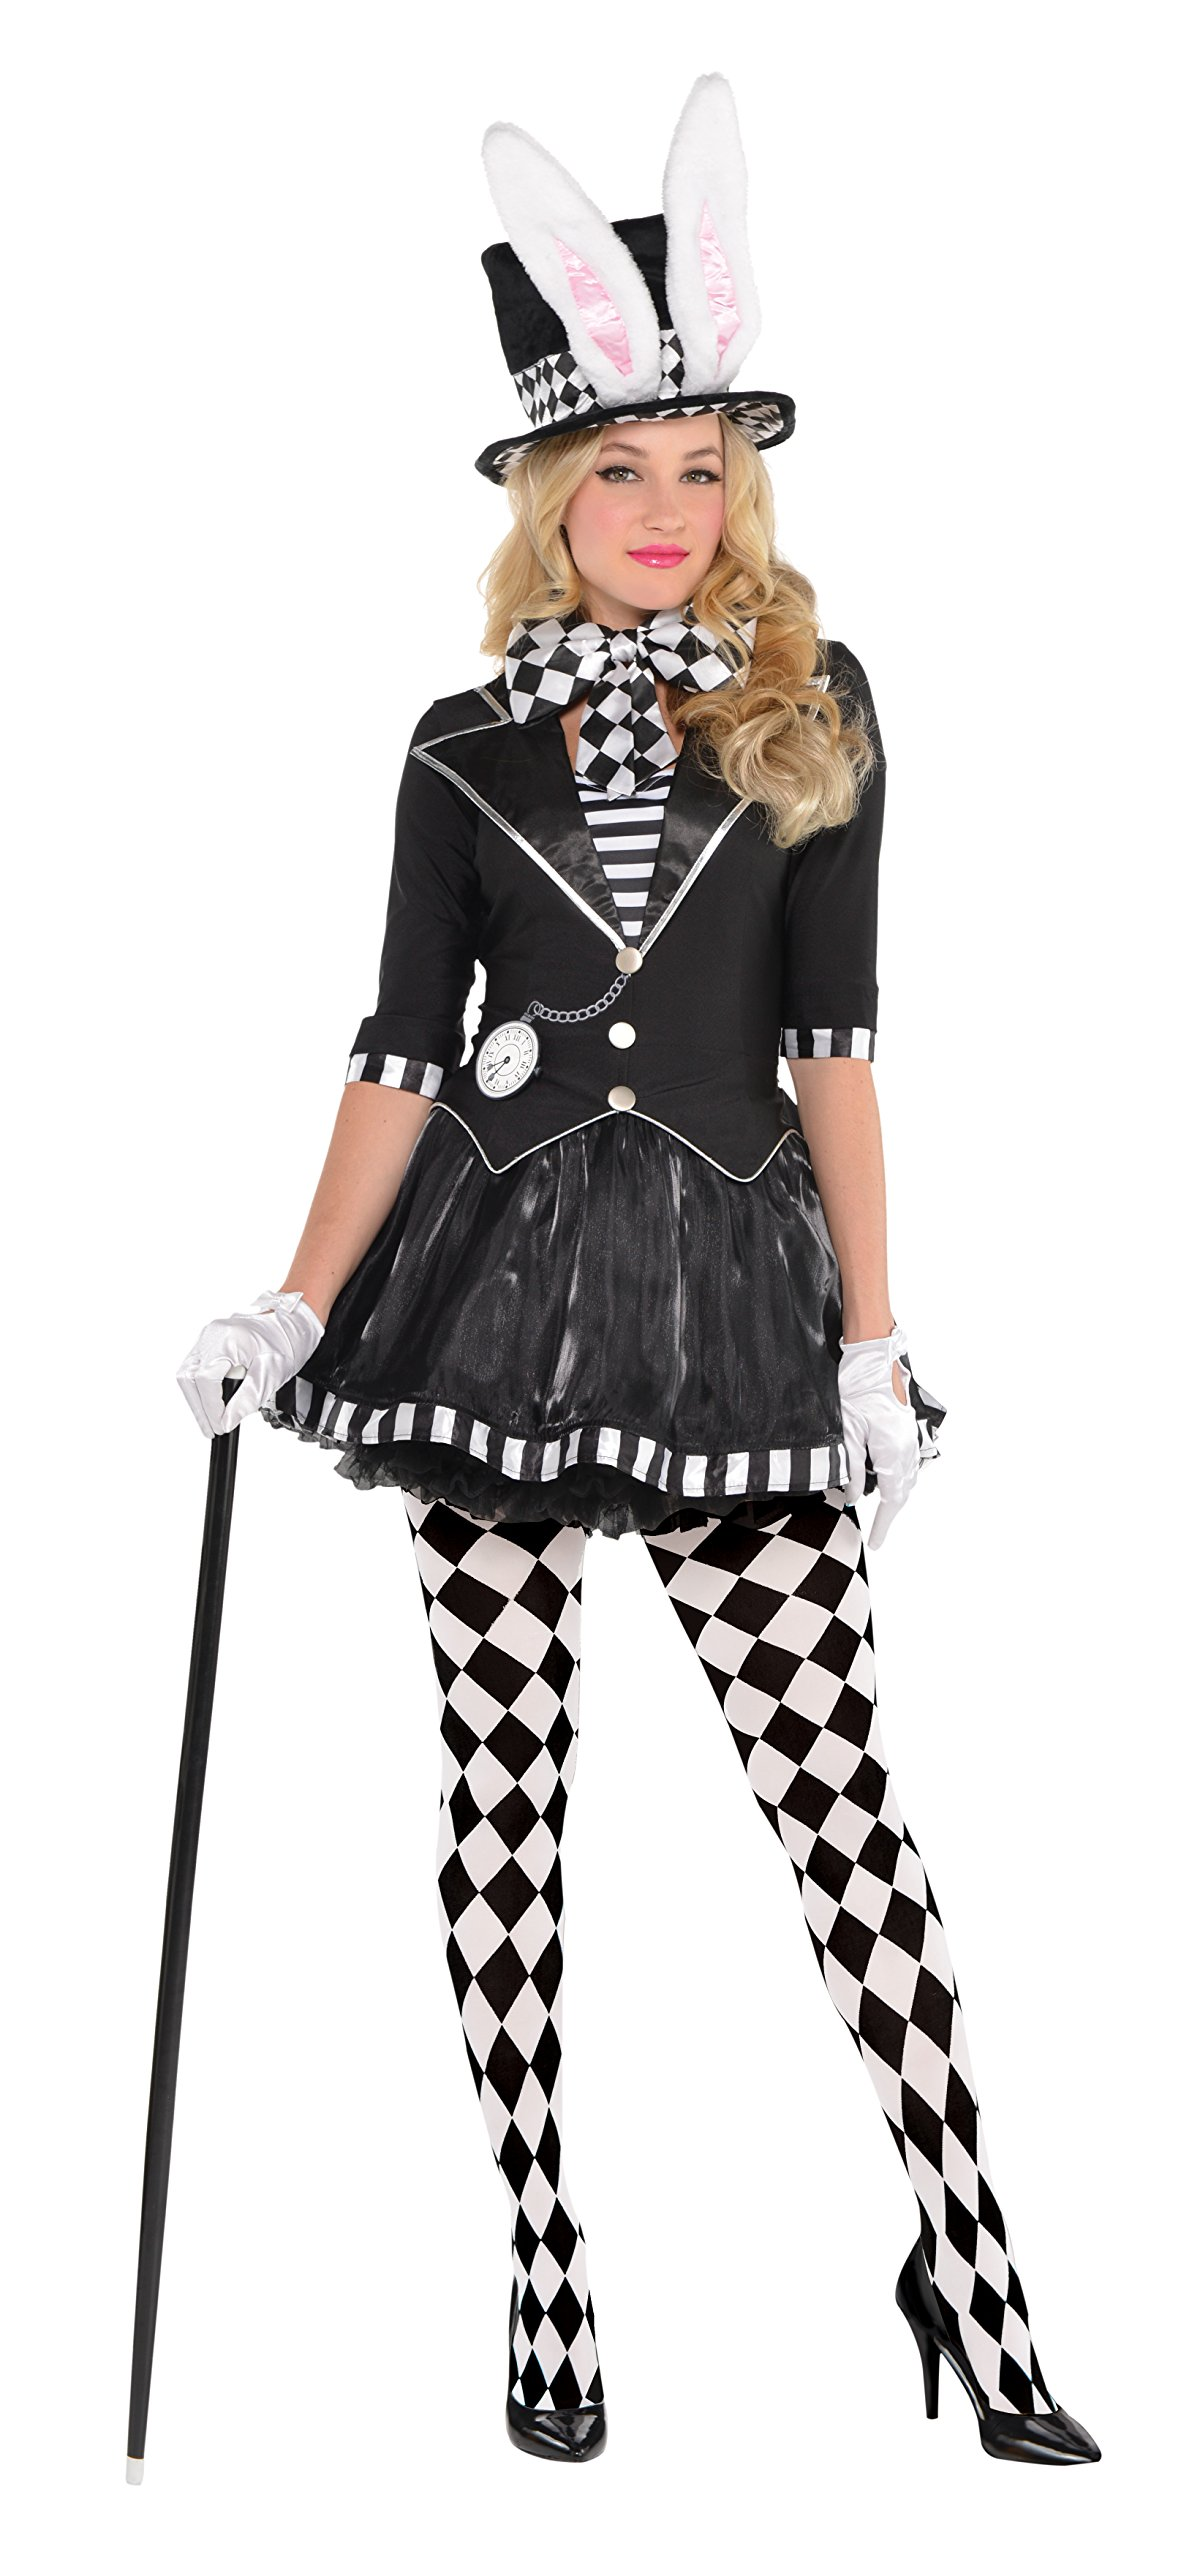 AMSCAN Dark Mad Hatter Halloween Costume for Women, Medium, with Included Accessories by amscan